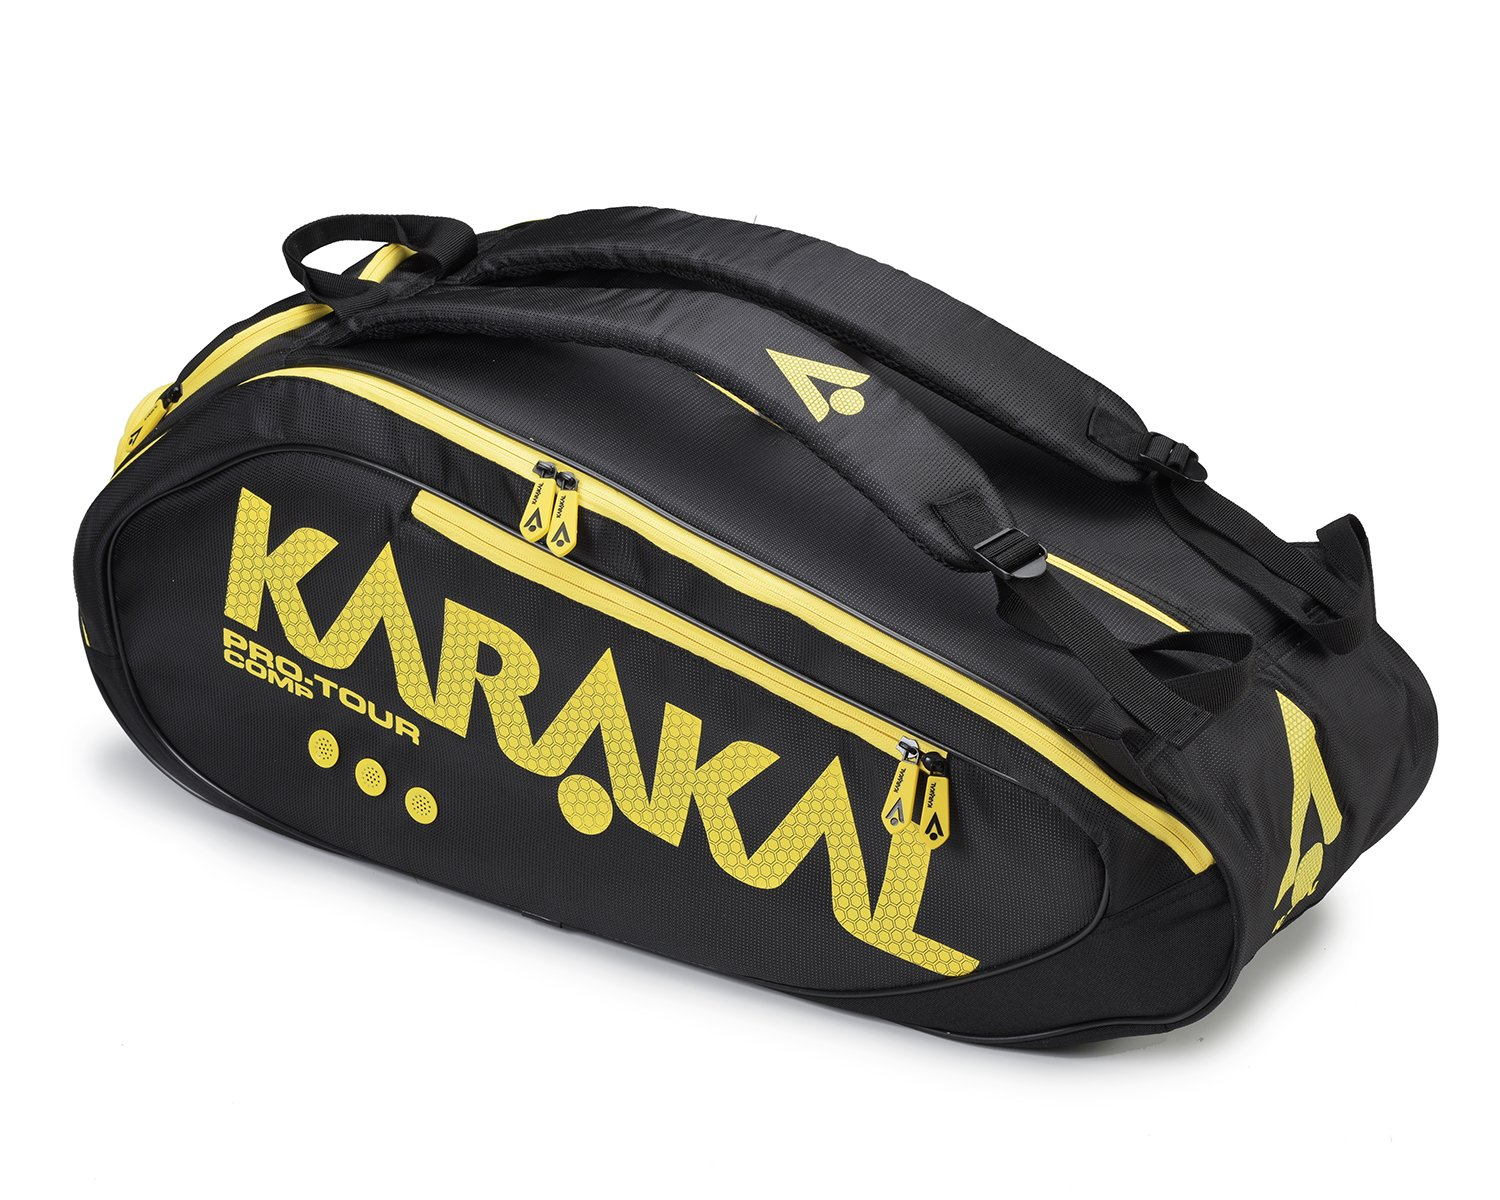 Karakal Pro Tour Comp 9 Racket Bag KZ 981